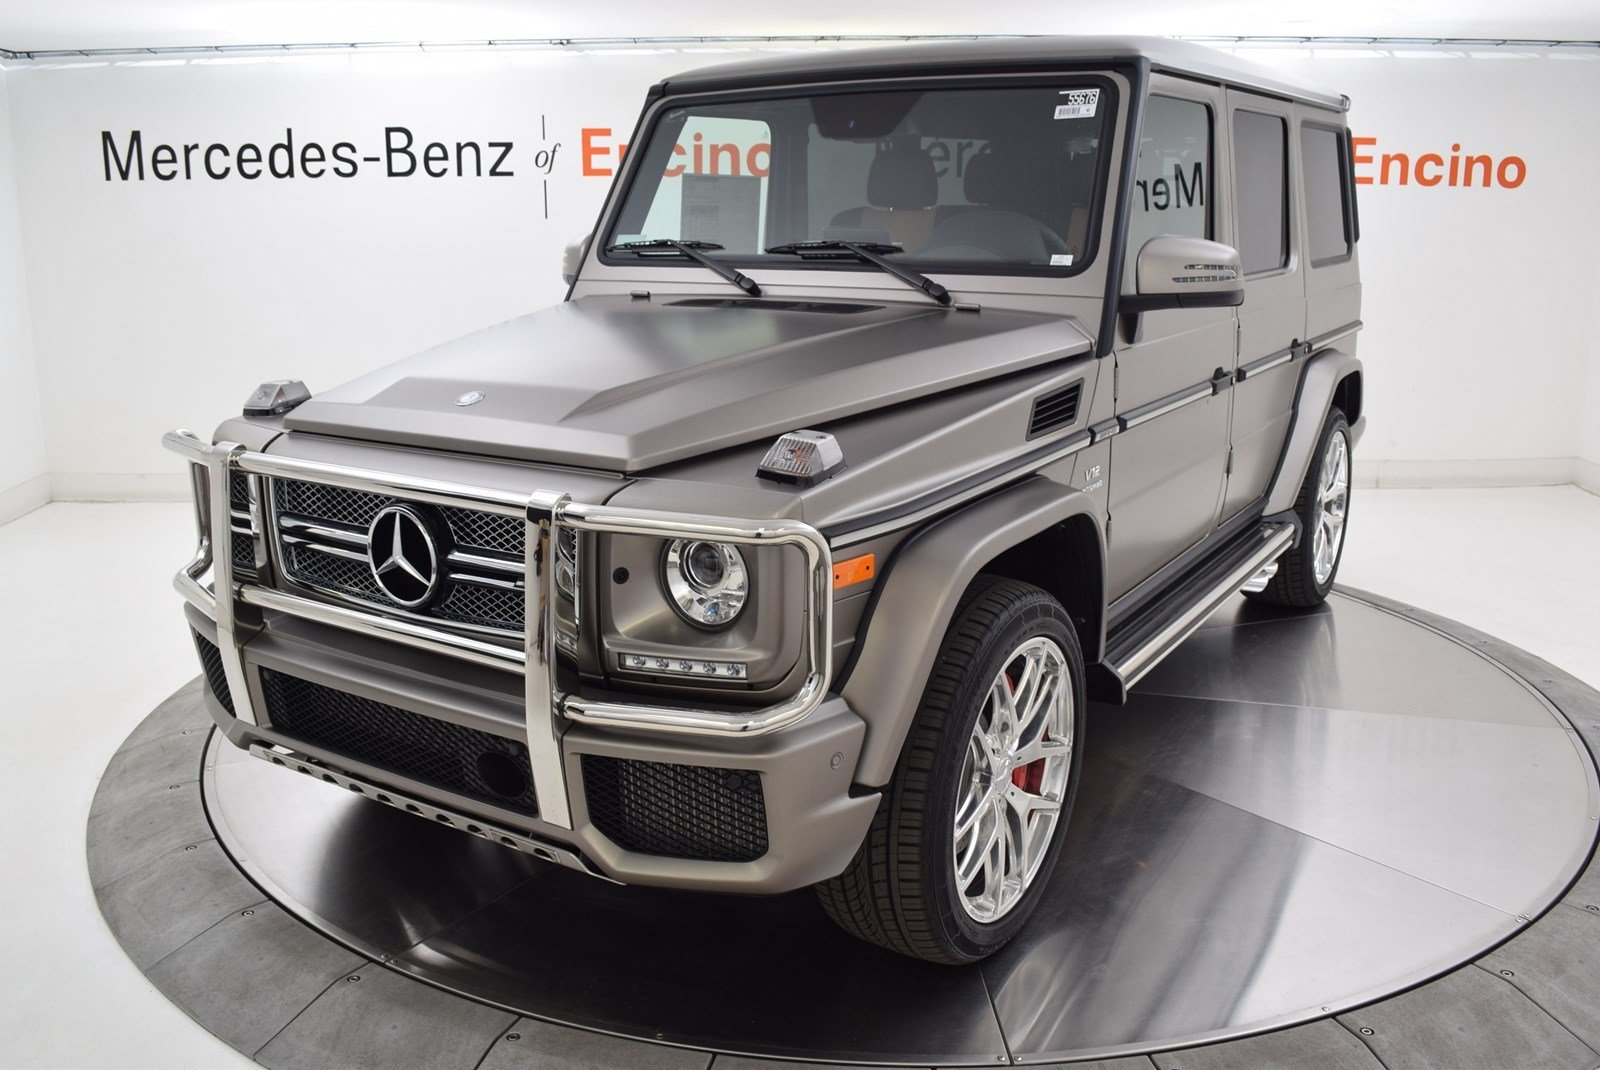 New 2017 mercedes benz g class g 65 amg suv suv in encino for Mercedes benz amg suv